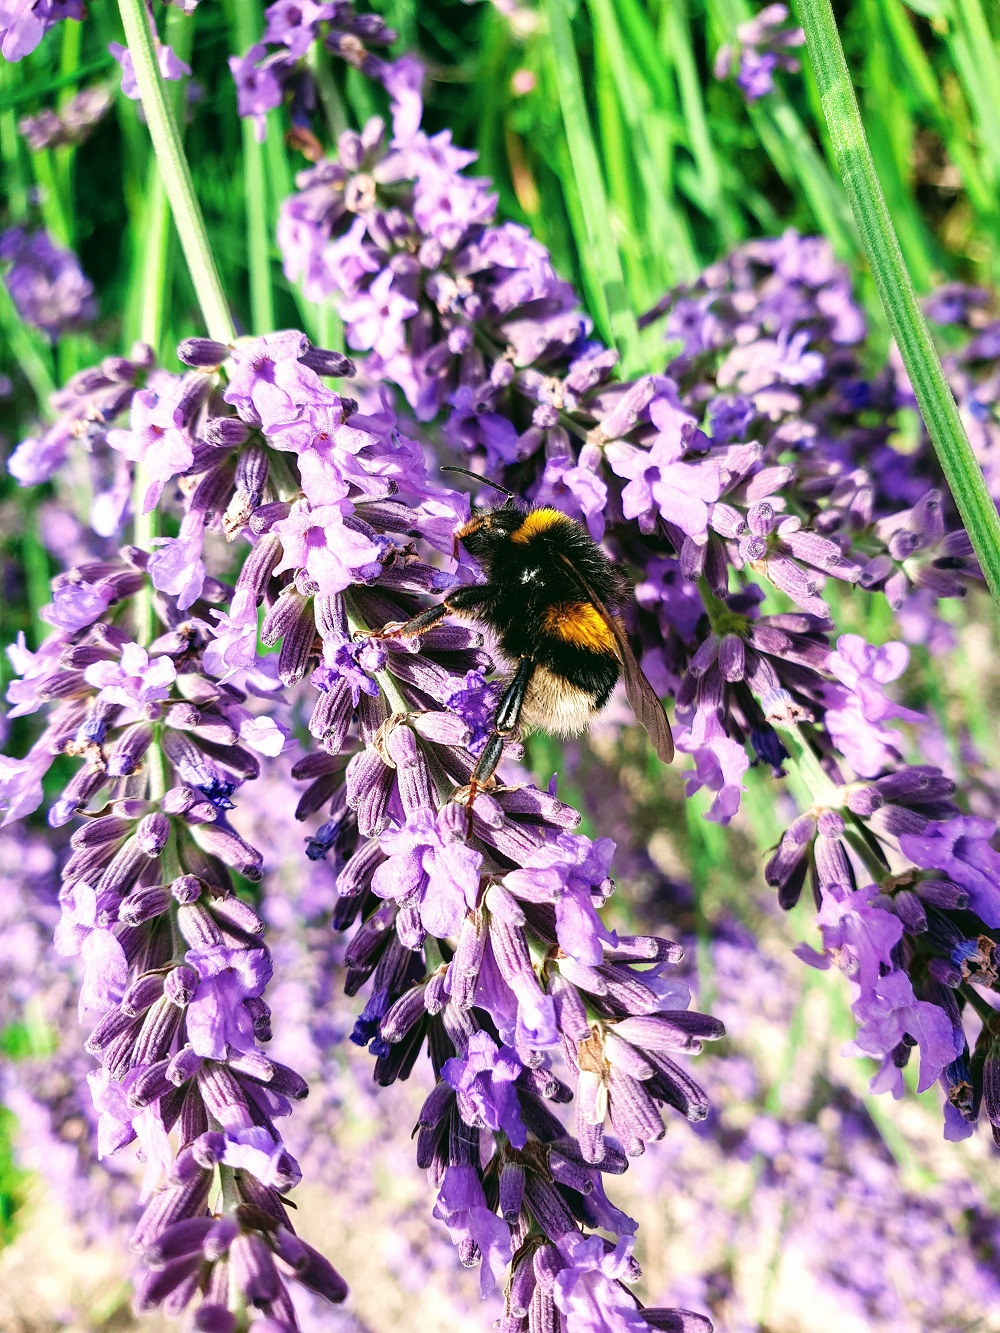 Bee Inspired: The Wednesday Photo Link Up